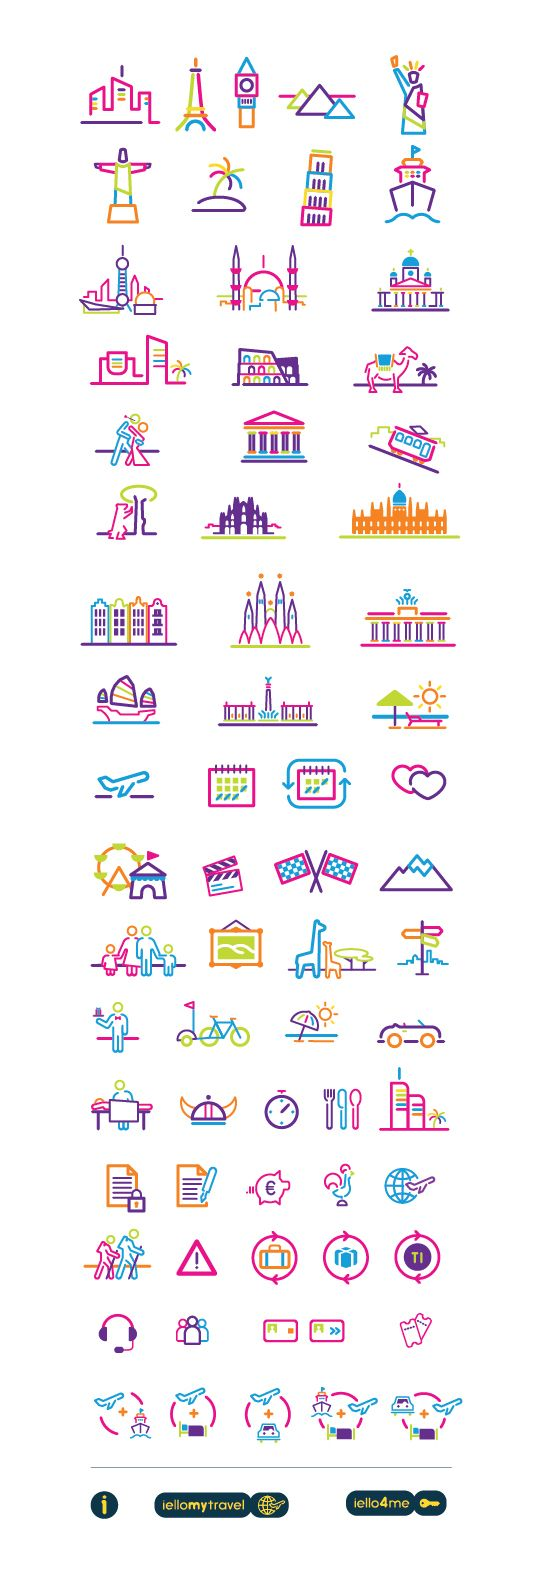 IELLO TRAVEL - icon set - David Rafachinho